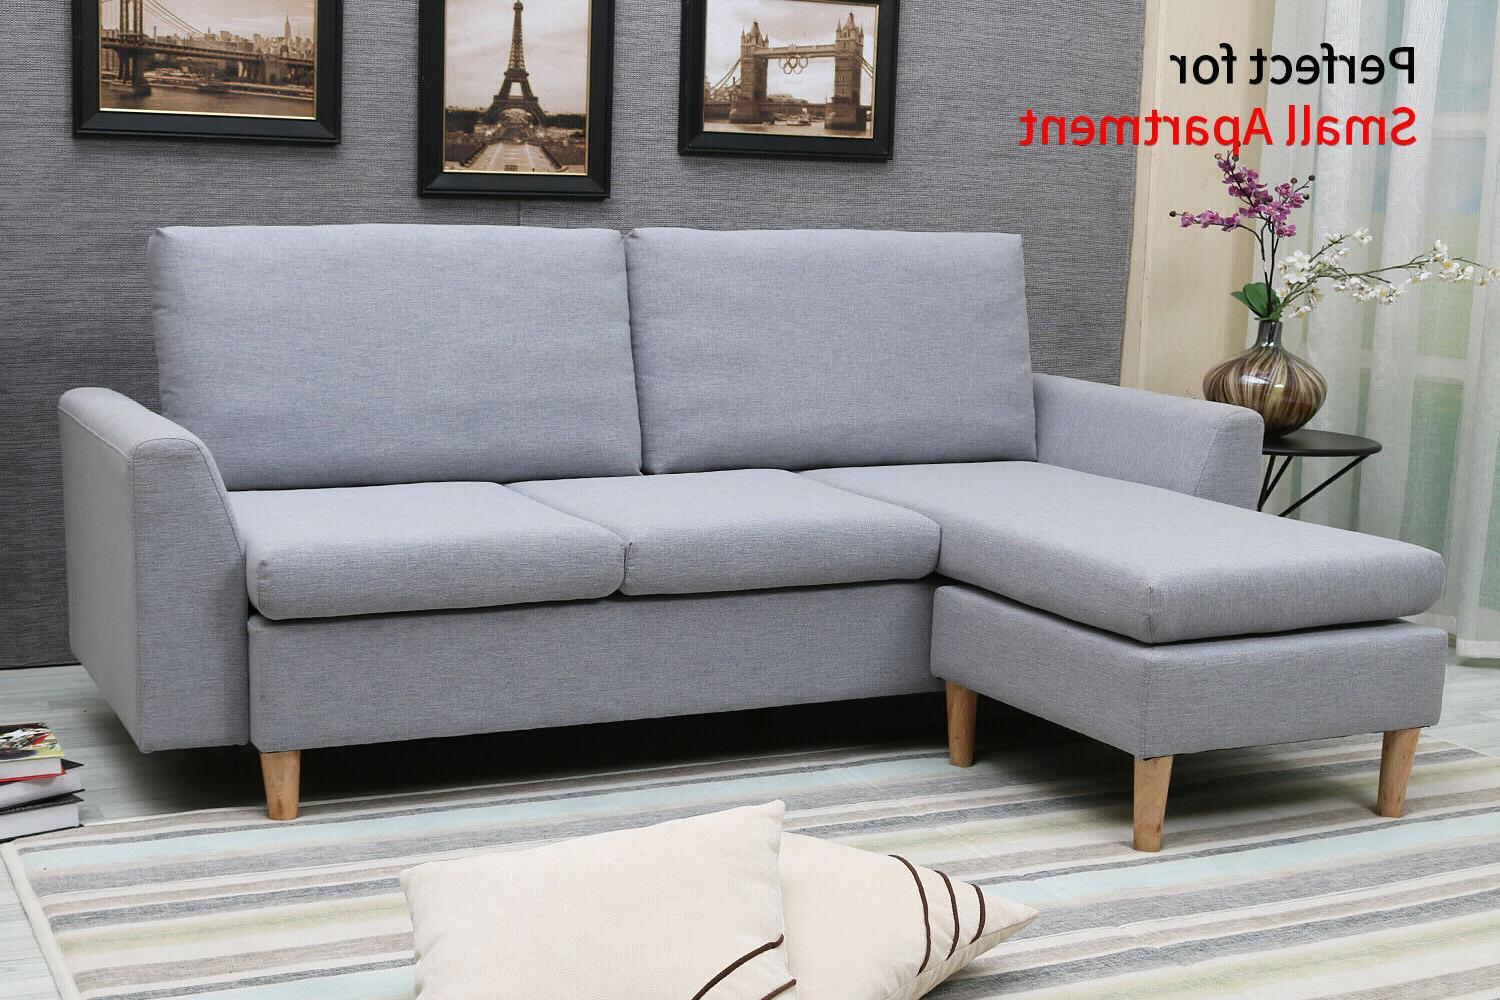 Swell Small Sectional Sofa L Shaped Couch With Reversible Chaise Sofa With Ottoman Short Links Chair Design For Home Short Linksinfo